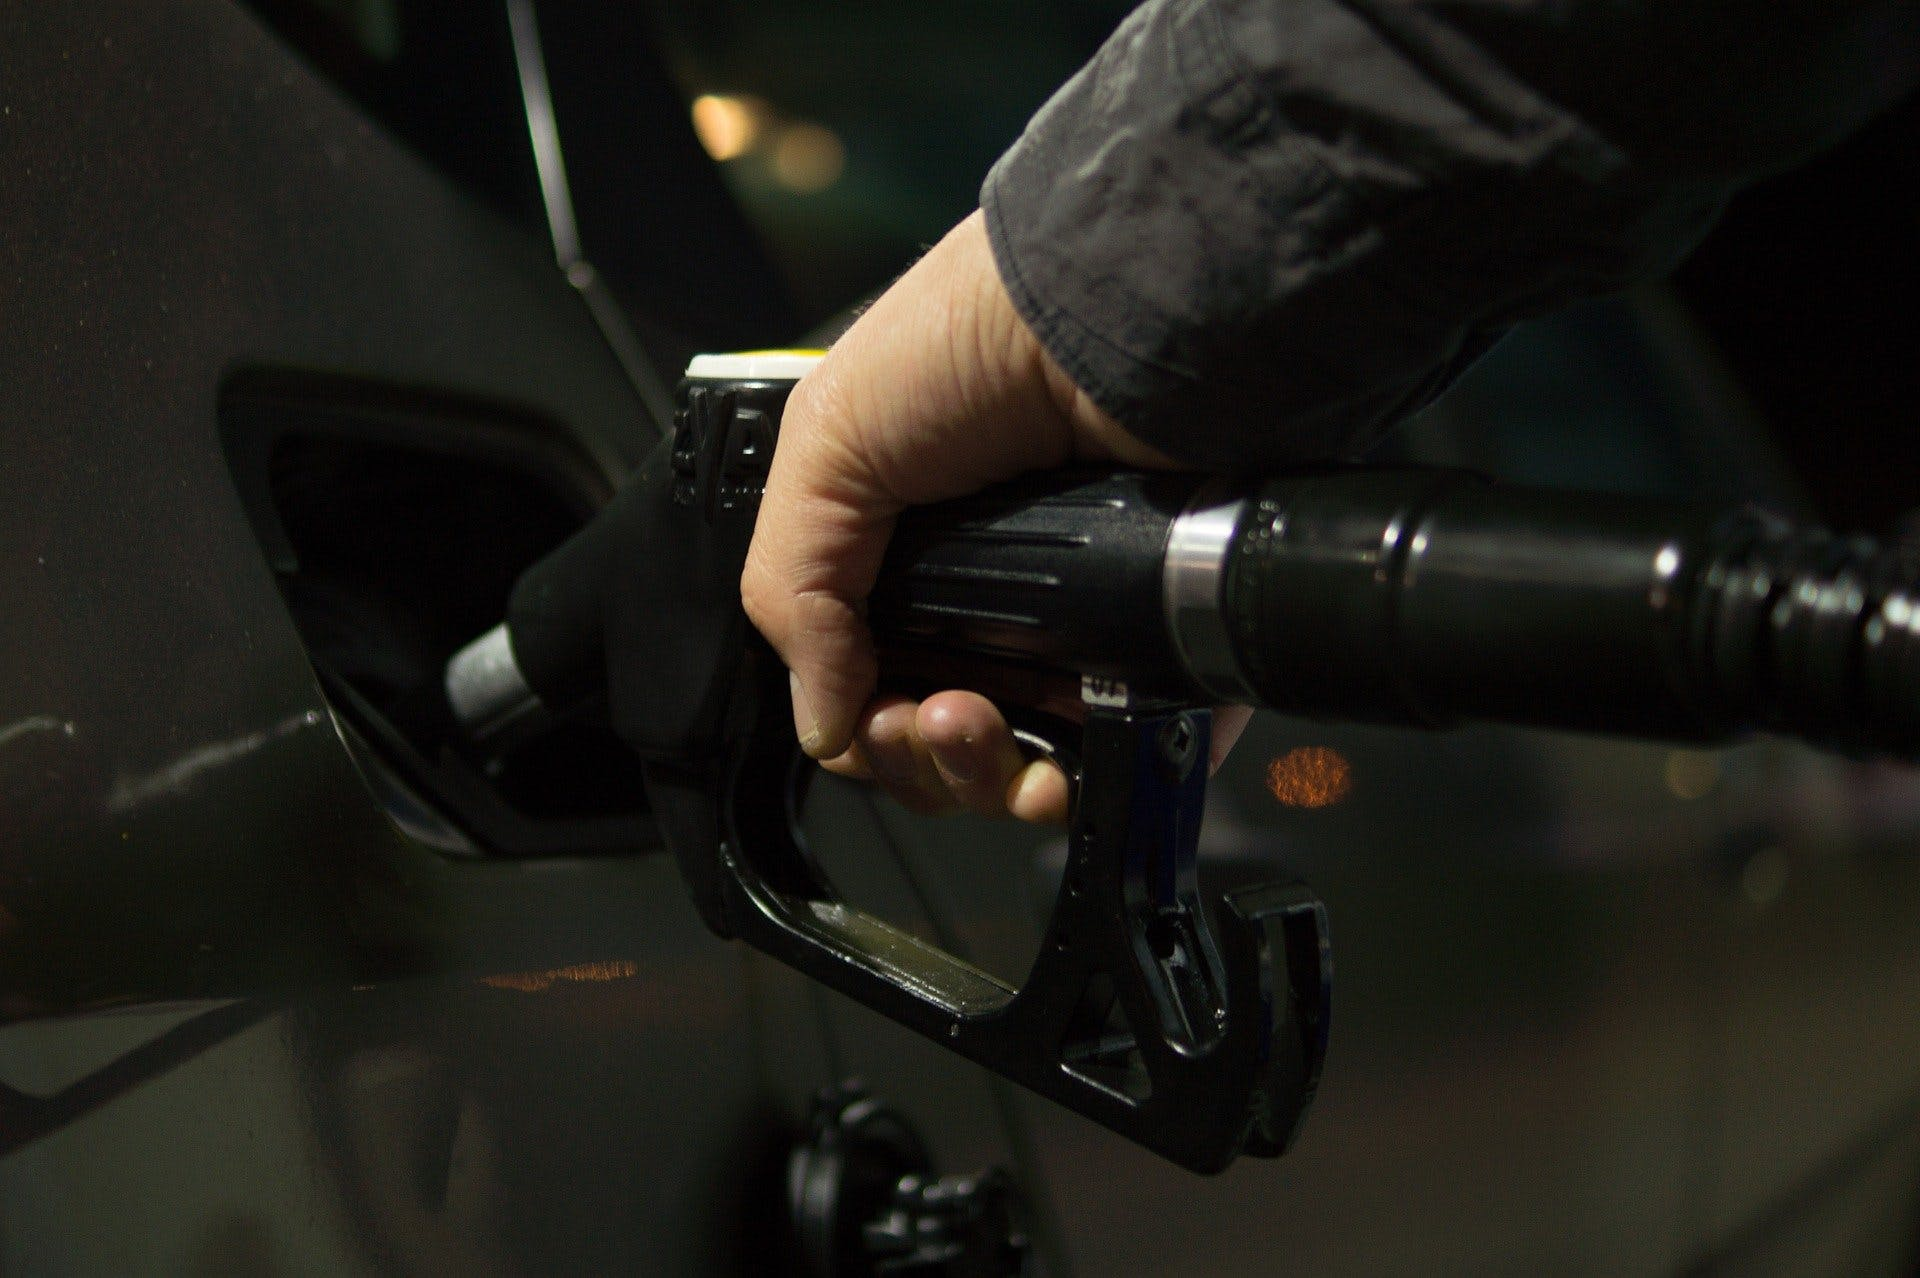 Petrol and diesel ban brought forward to 2035